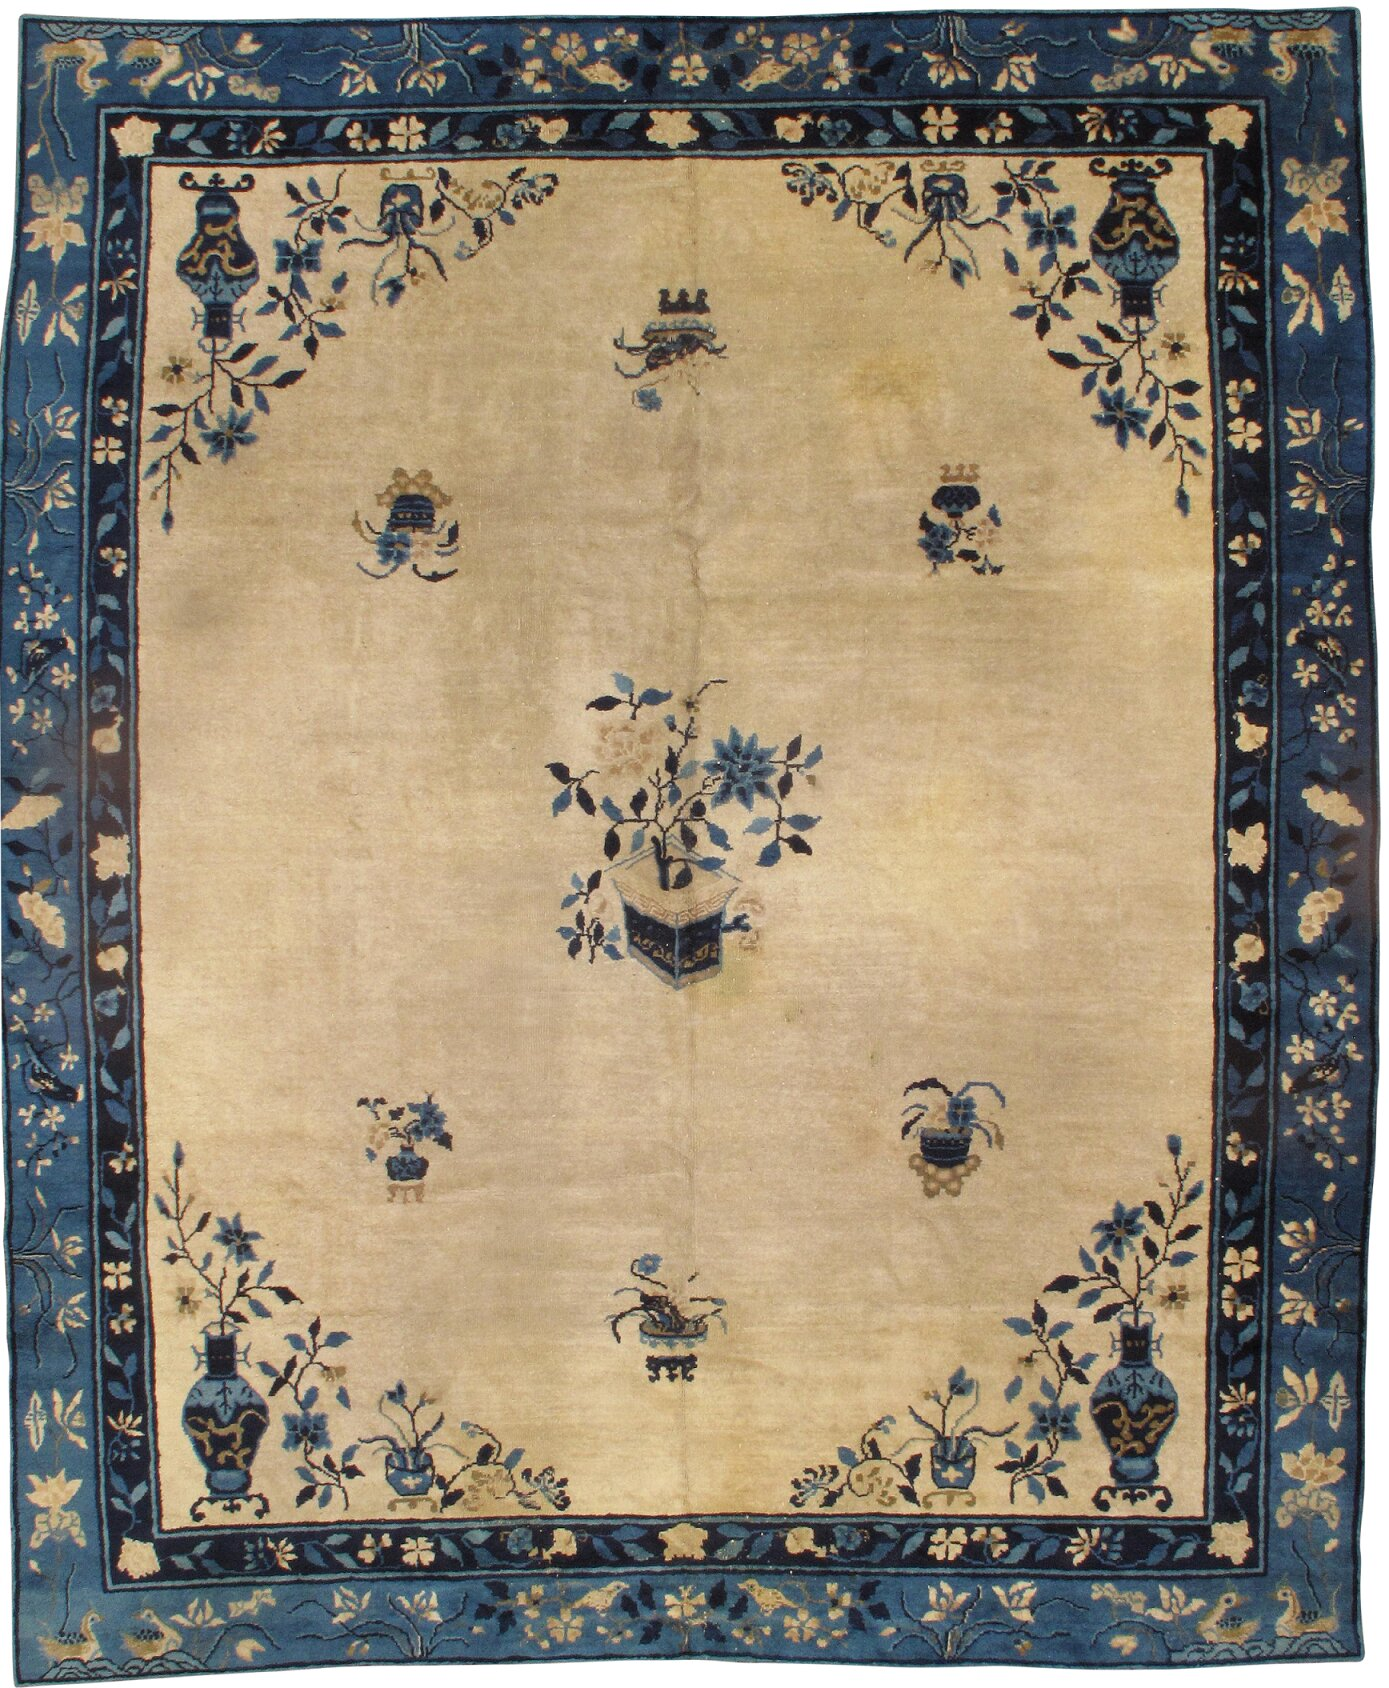 Chinese Hand Knotted Wool Rugs.Chinese Peking Hand Knotted Wool Ivory Blue Area Rug